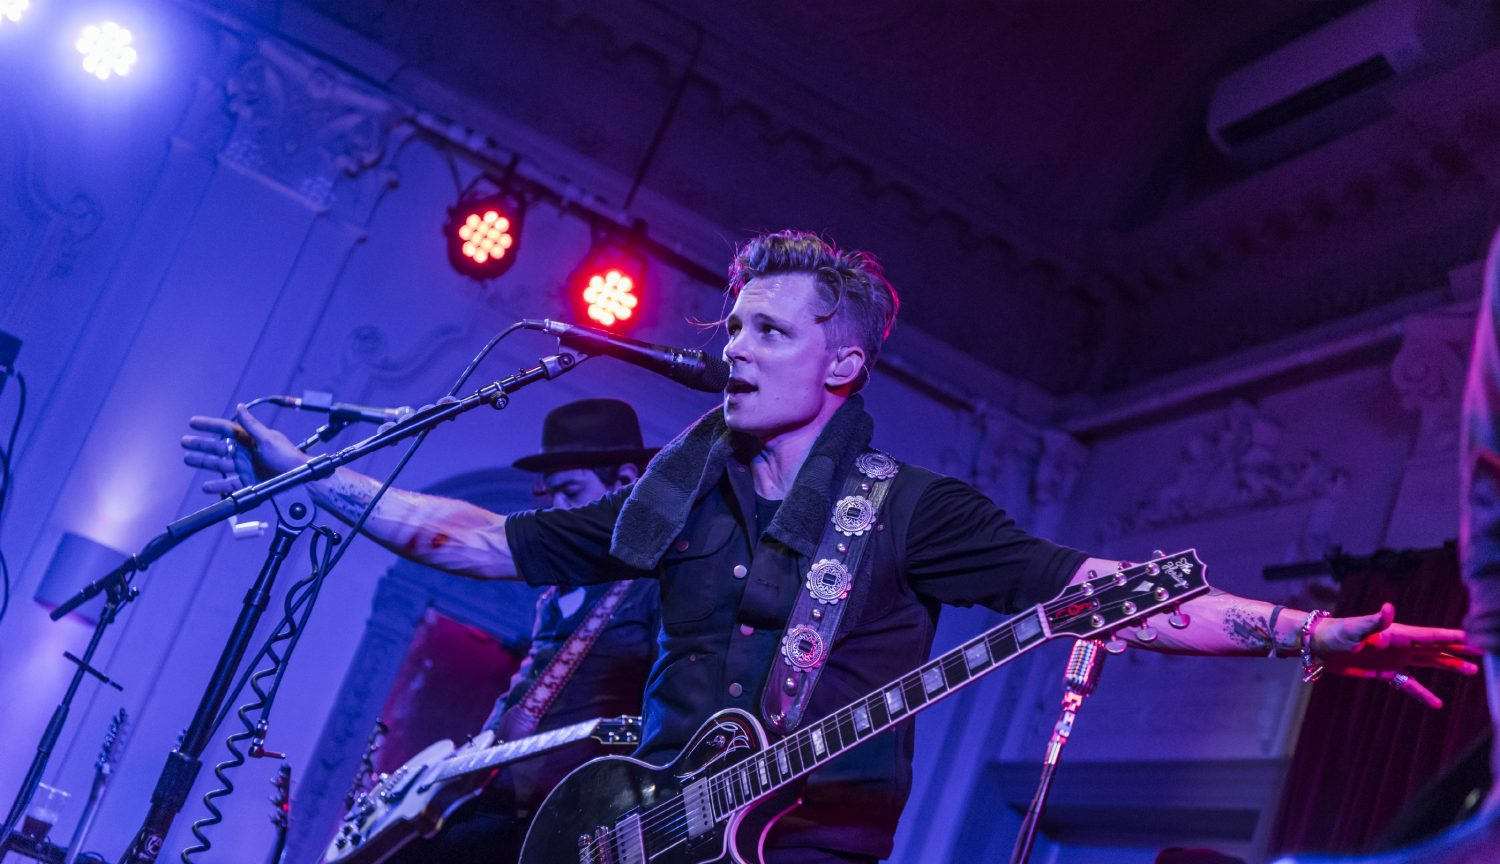 Frankie Ballard live at Bush Hall in London, UK on 13 October 2016. Photo by: Carsten Windhorst / Courtesy of Shorefire Media.